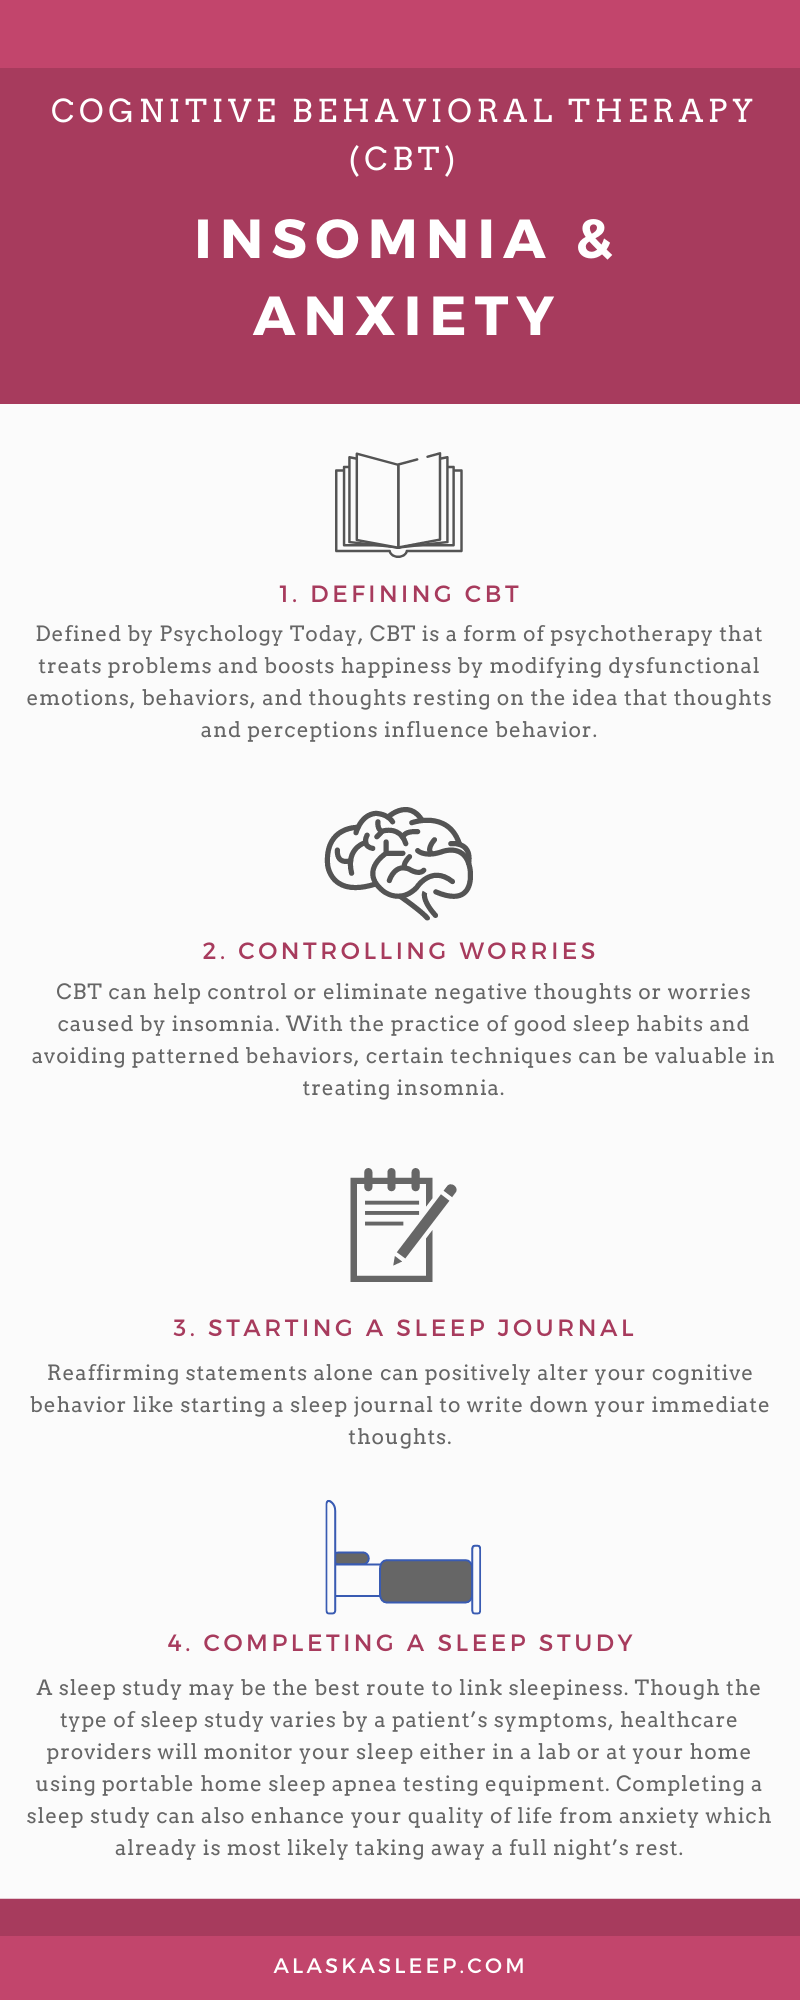 CBT Therapy for Insomnia and Anxiety